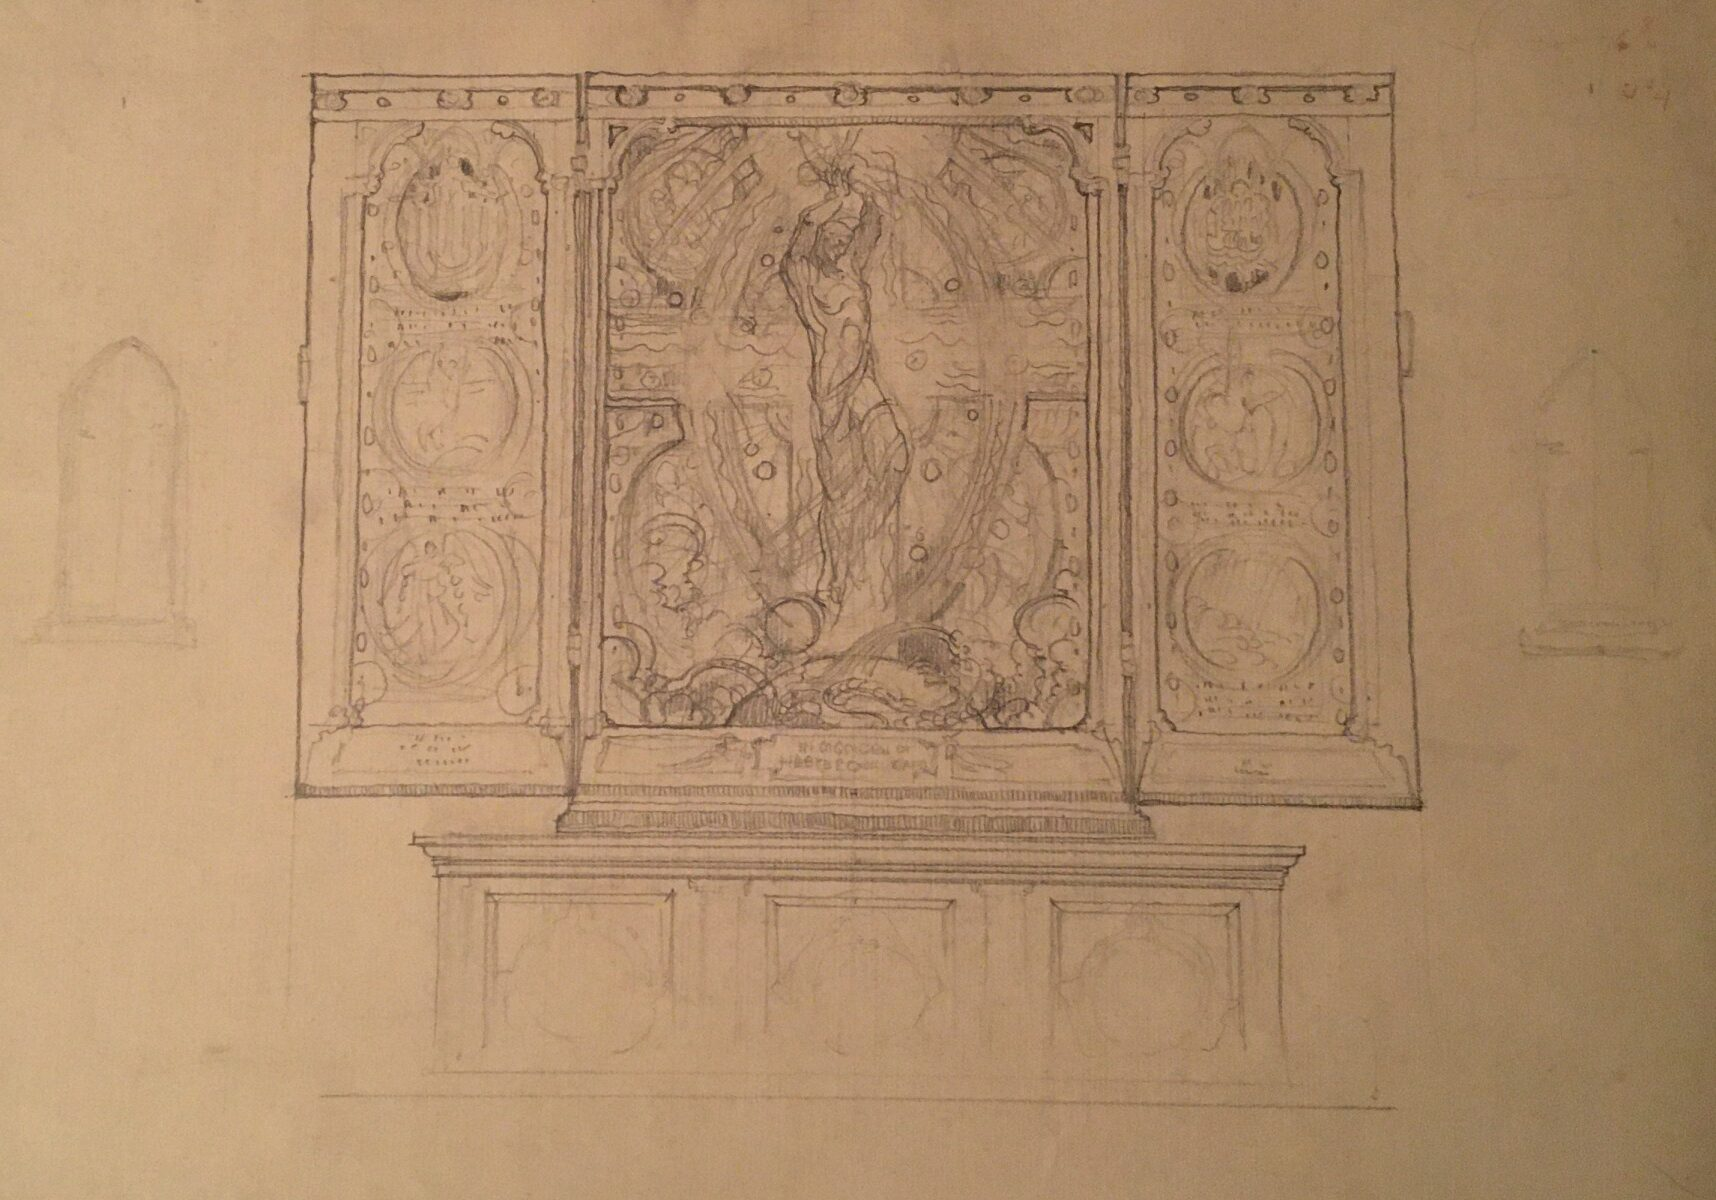 Violet Oakley, American, 1874–1961. Study for The Great Wonder on an Altar, ca. 1916- 1922. Pencil on paper. Gift of the Violet Oakley Memorial Foundation; 1982.36.3.